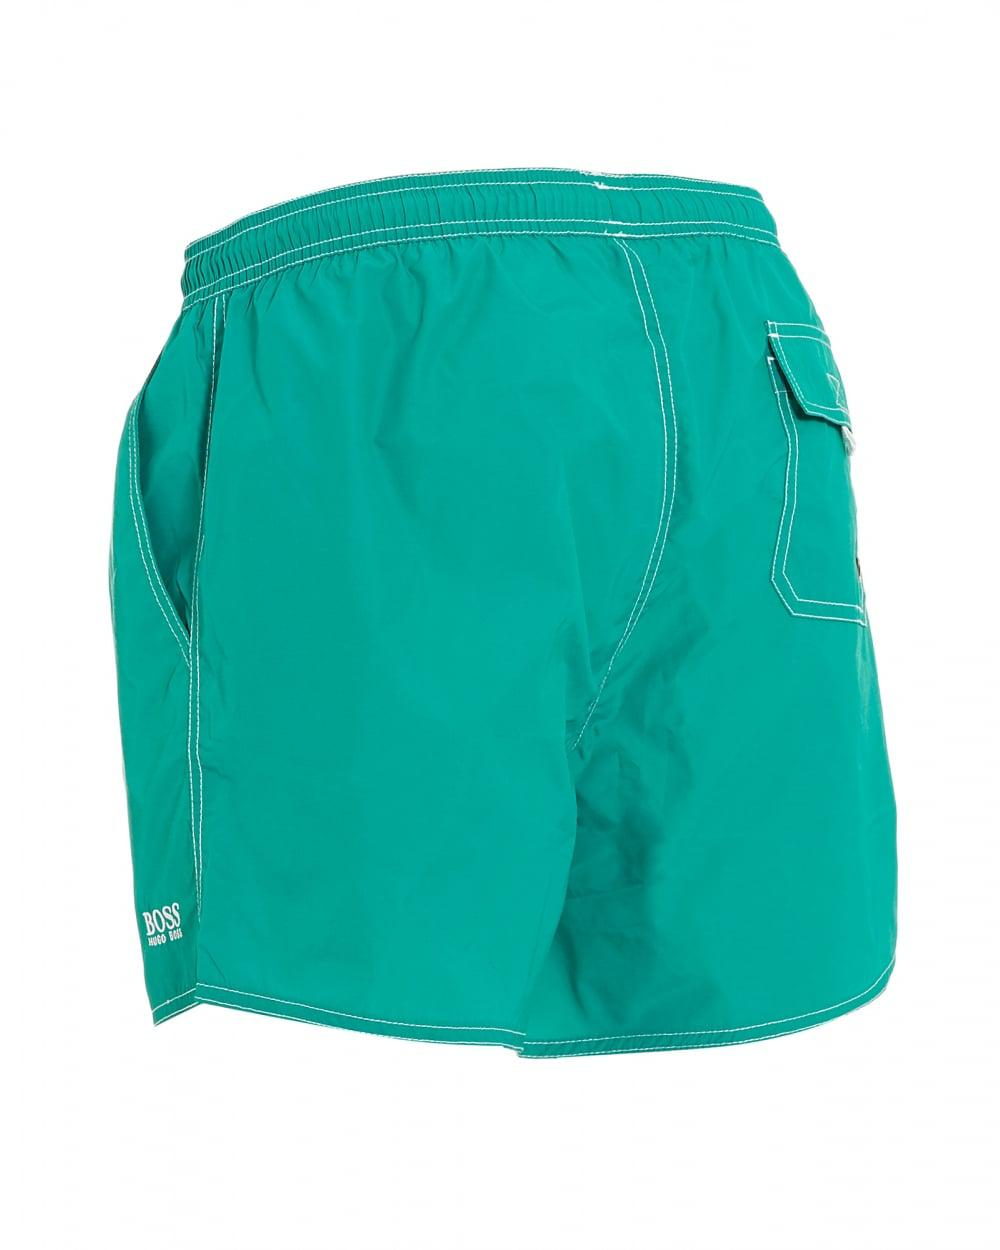 8bd68916b9ea9 Lyst - BOSS Lobster Short Aqua Blue Swim Shorts in Blue for Men